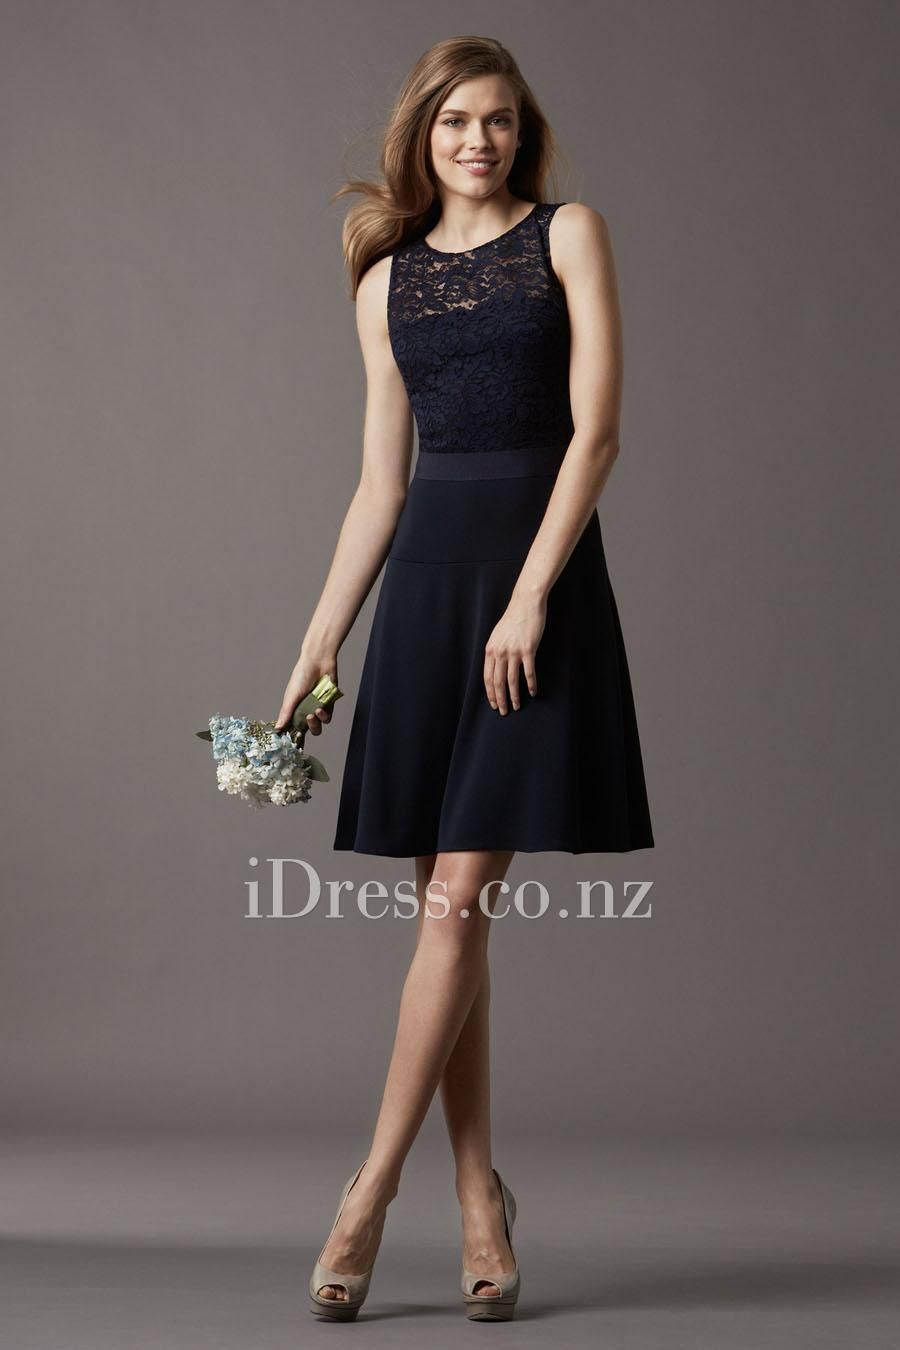 Midnight blue lace jewel neck sleeveless bridesmaid dress idress midnight blue lace jewel neck sleeveless bridesmaid dress idress ombrellifo Images